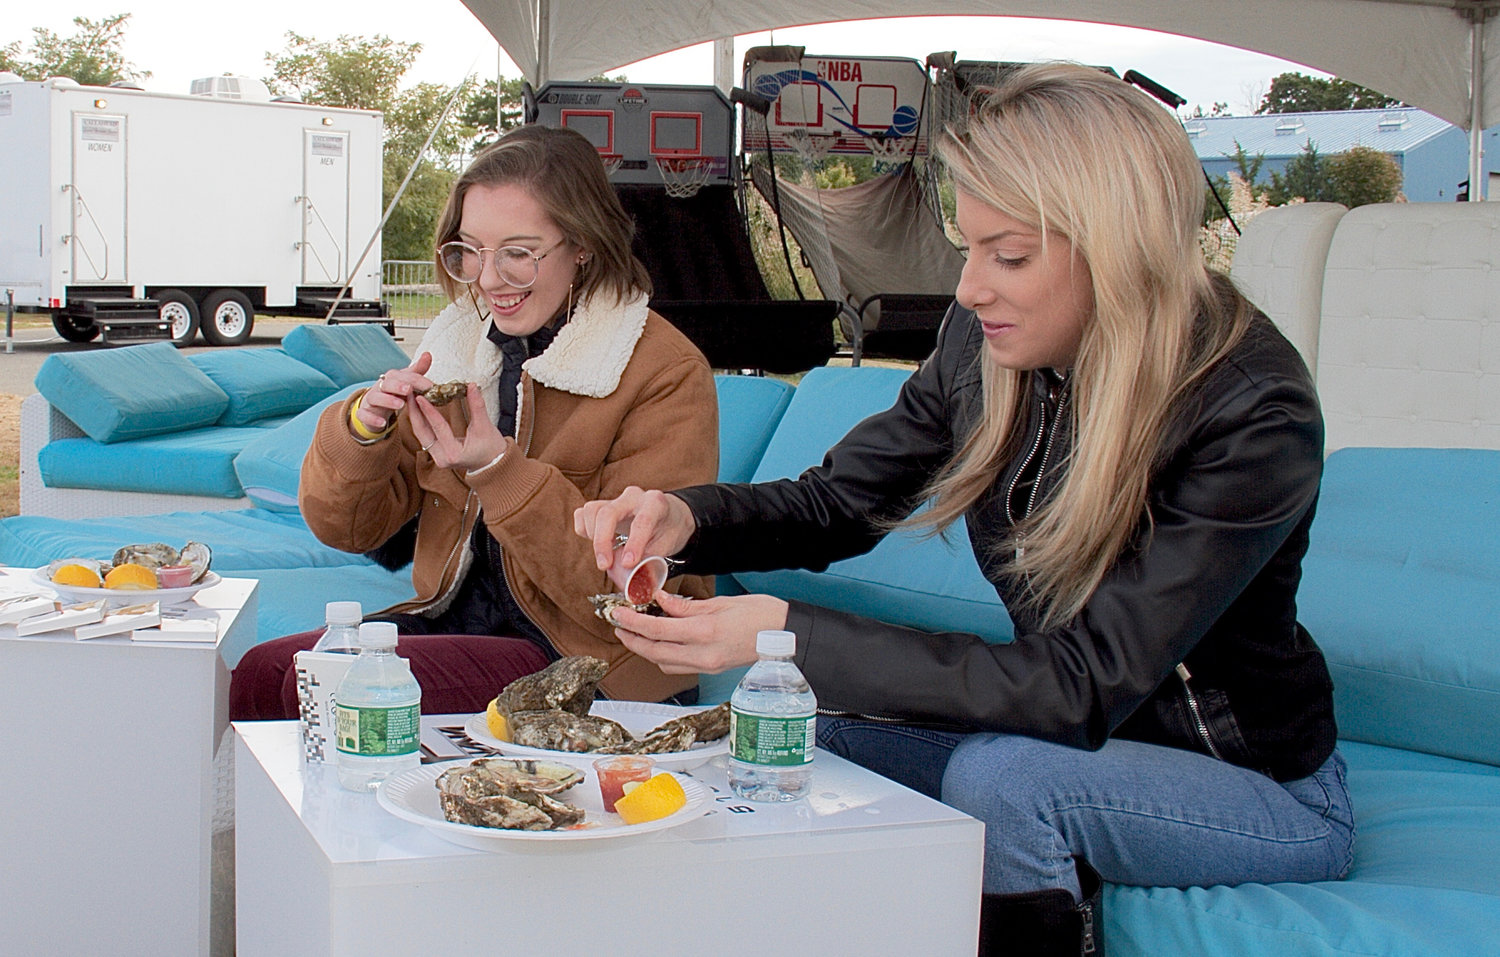 Kristin Walters and Kayla Henley enjoyed oysters under the VIP tent.